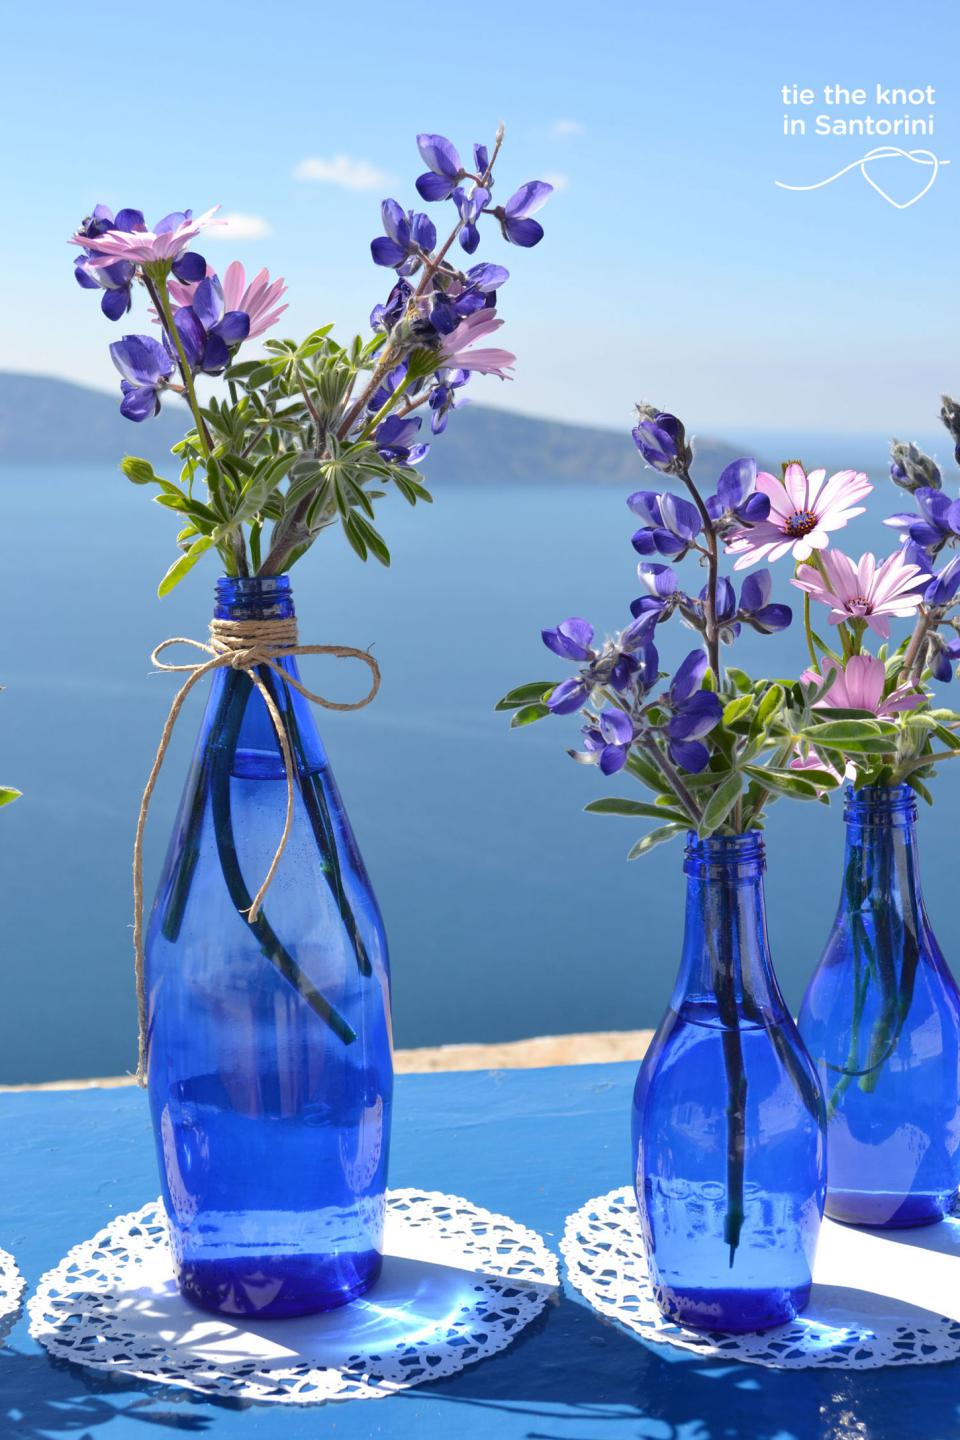 Diy santorini wedding decor in blue purple tie the knot